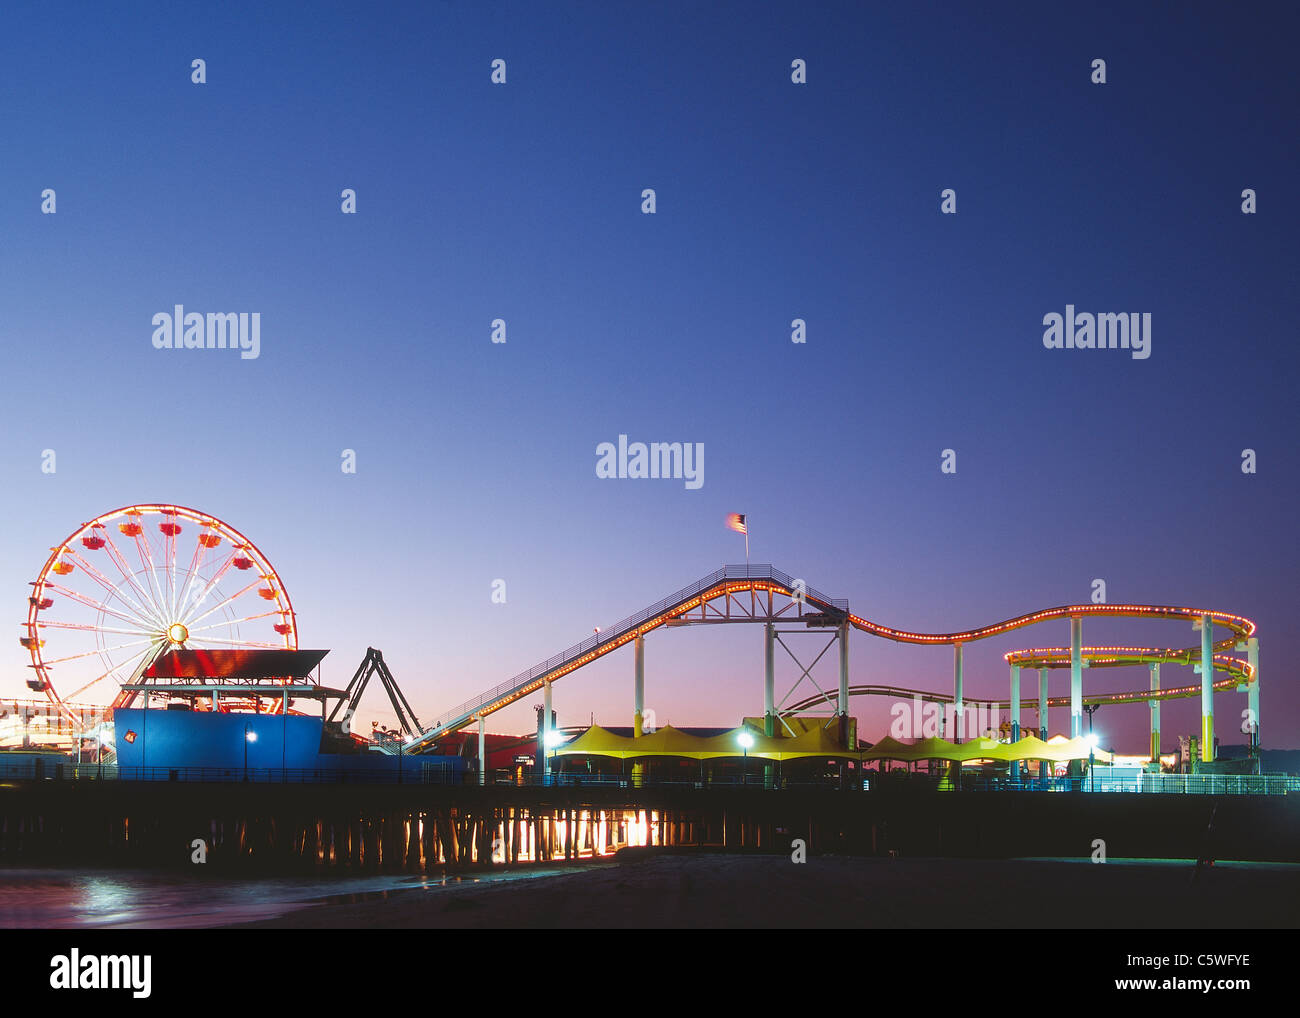 USA, California, Los Angeles, View of amusement park on the beach at evening - Stock Image